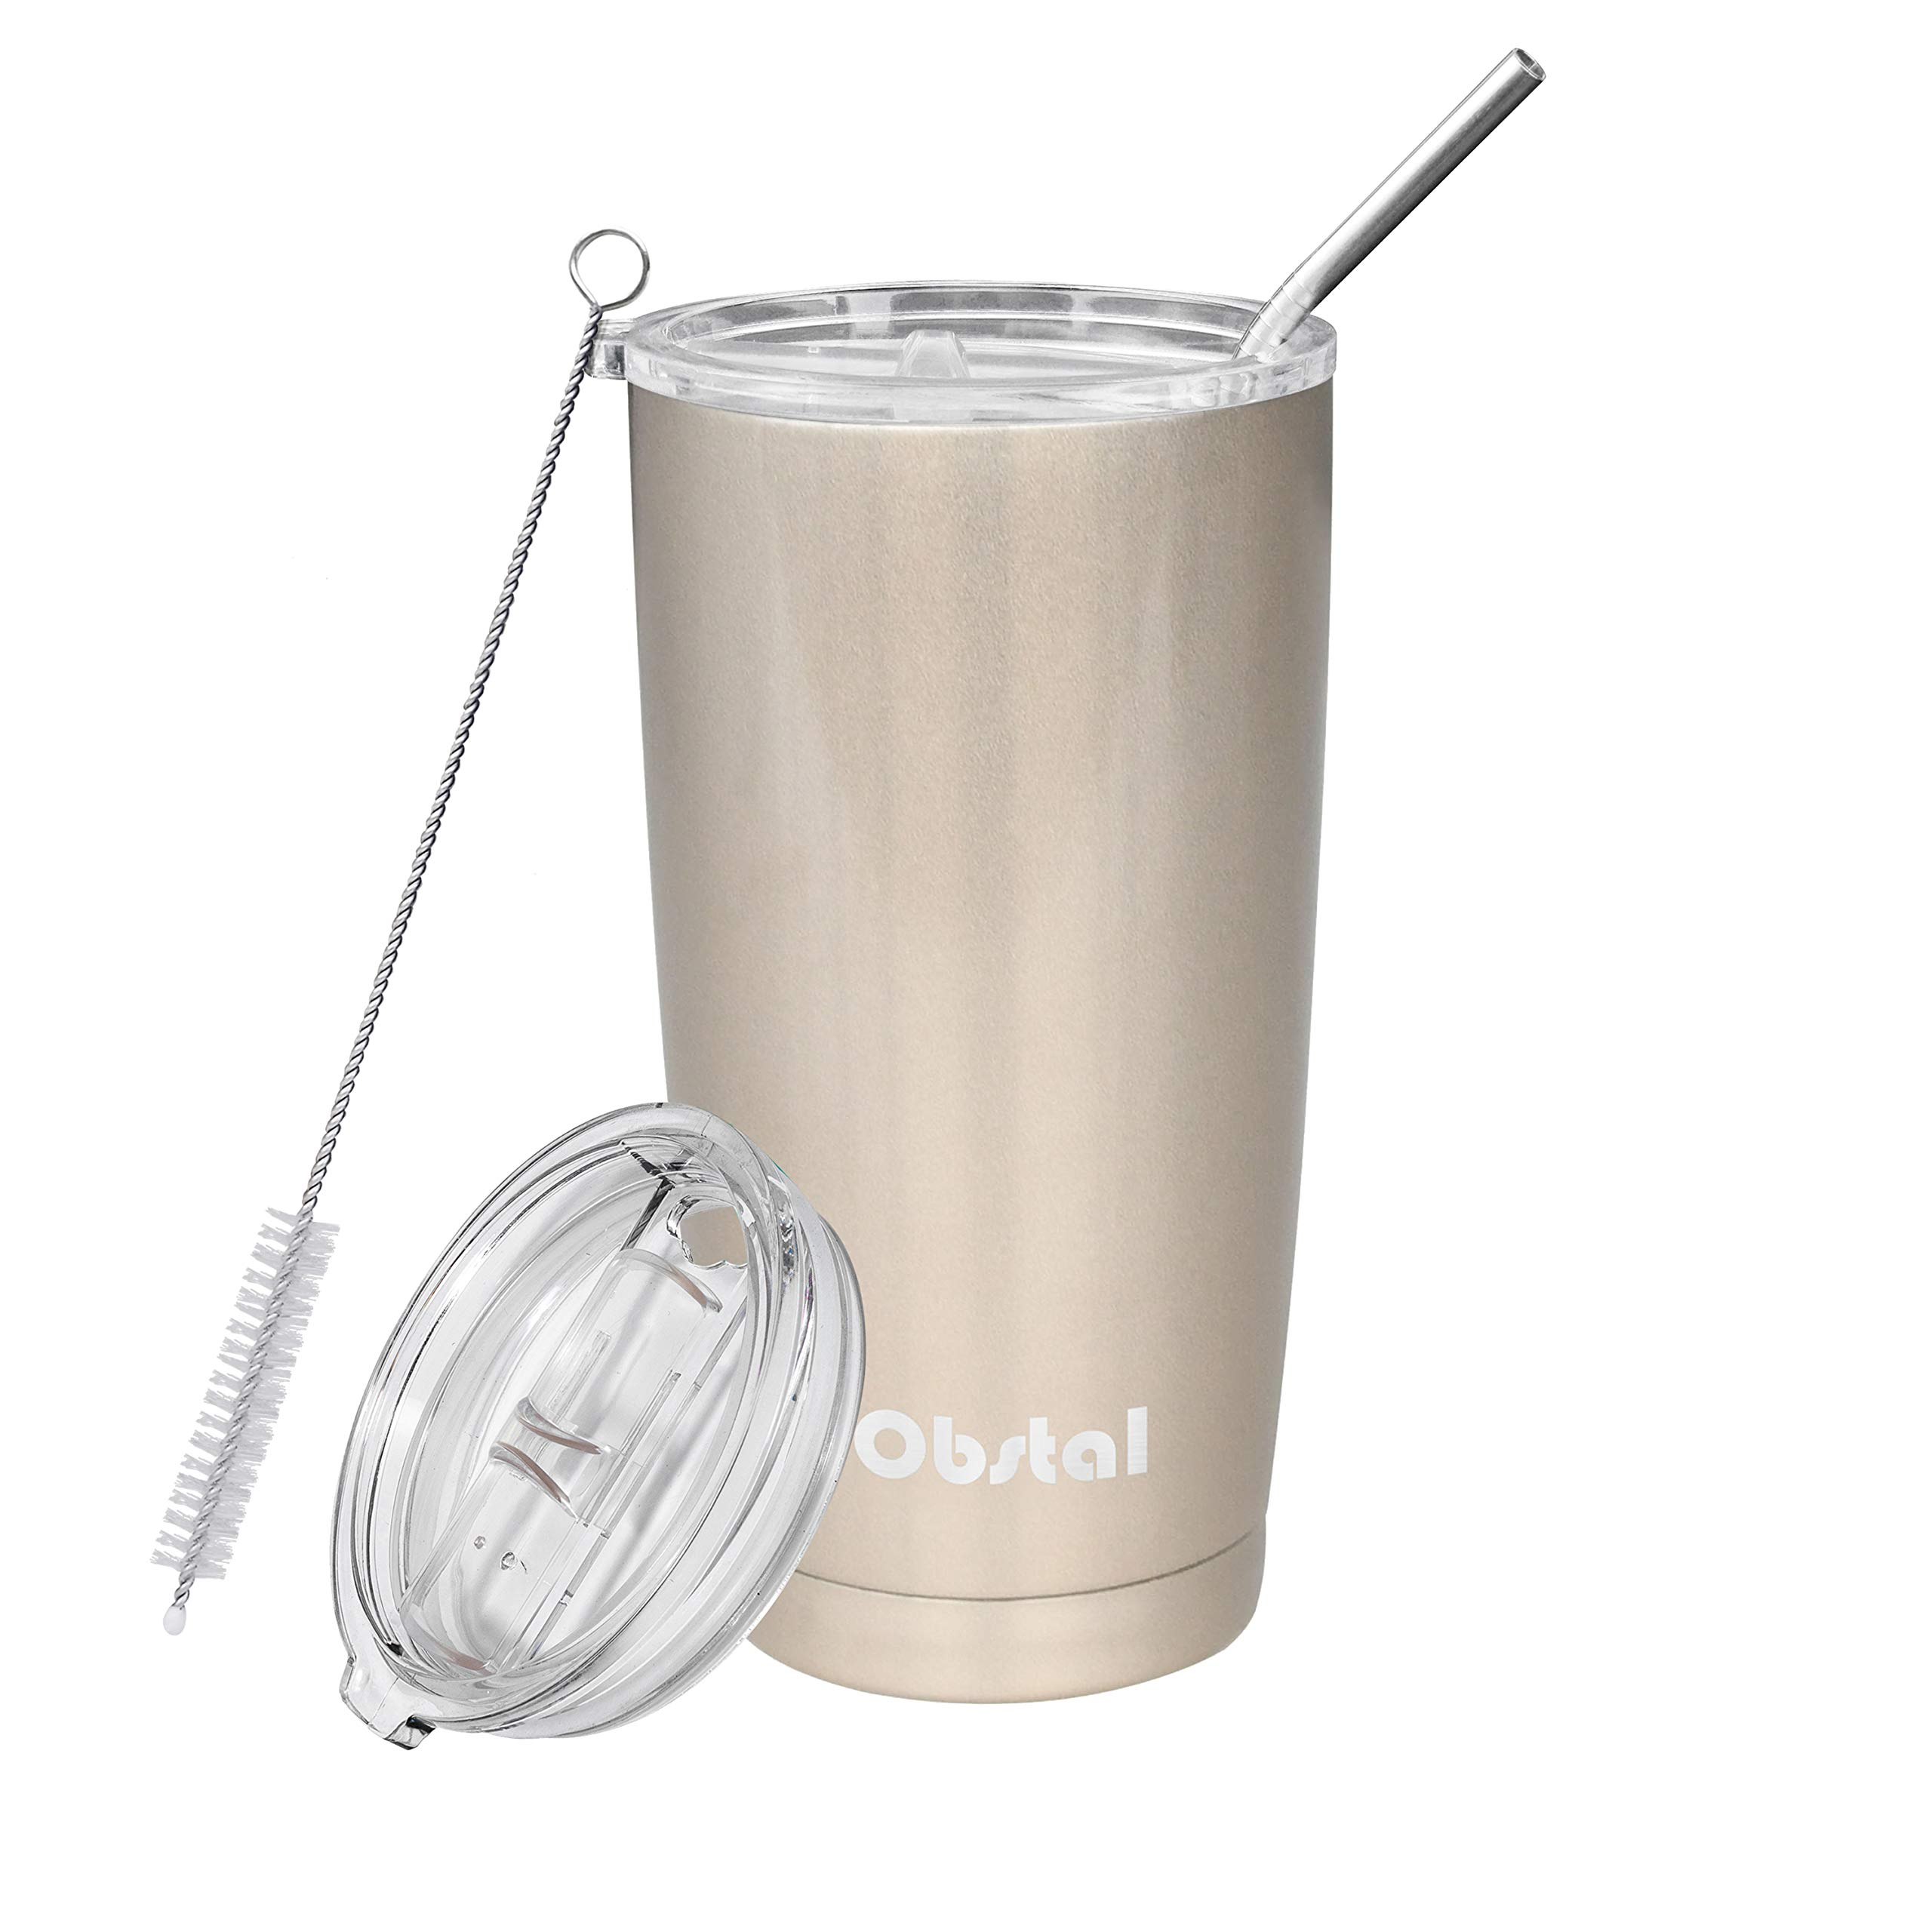 Obstal Insulated Coffee Tumbler Stainless Steel Double Wall Vacuum with Stainless Straw, 2 Clear Lids & Cleaning Brush for Office, Gift (20 oz, Champagne Gold)